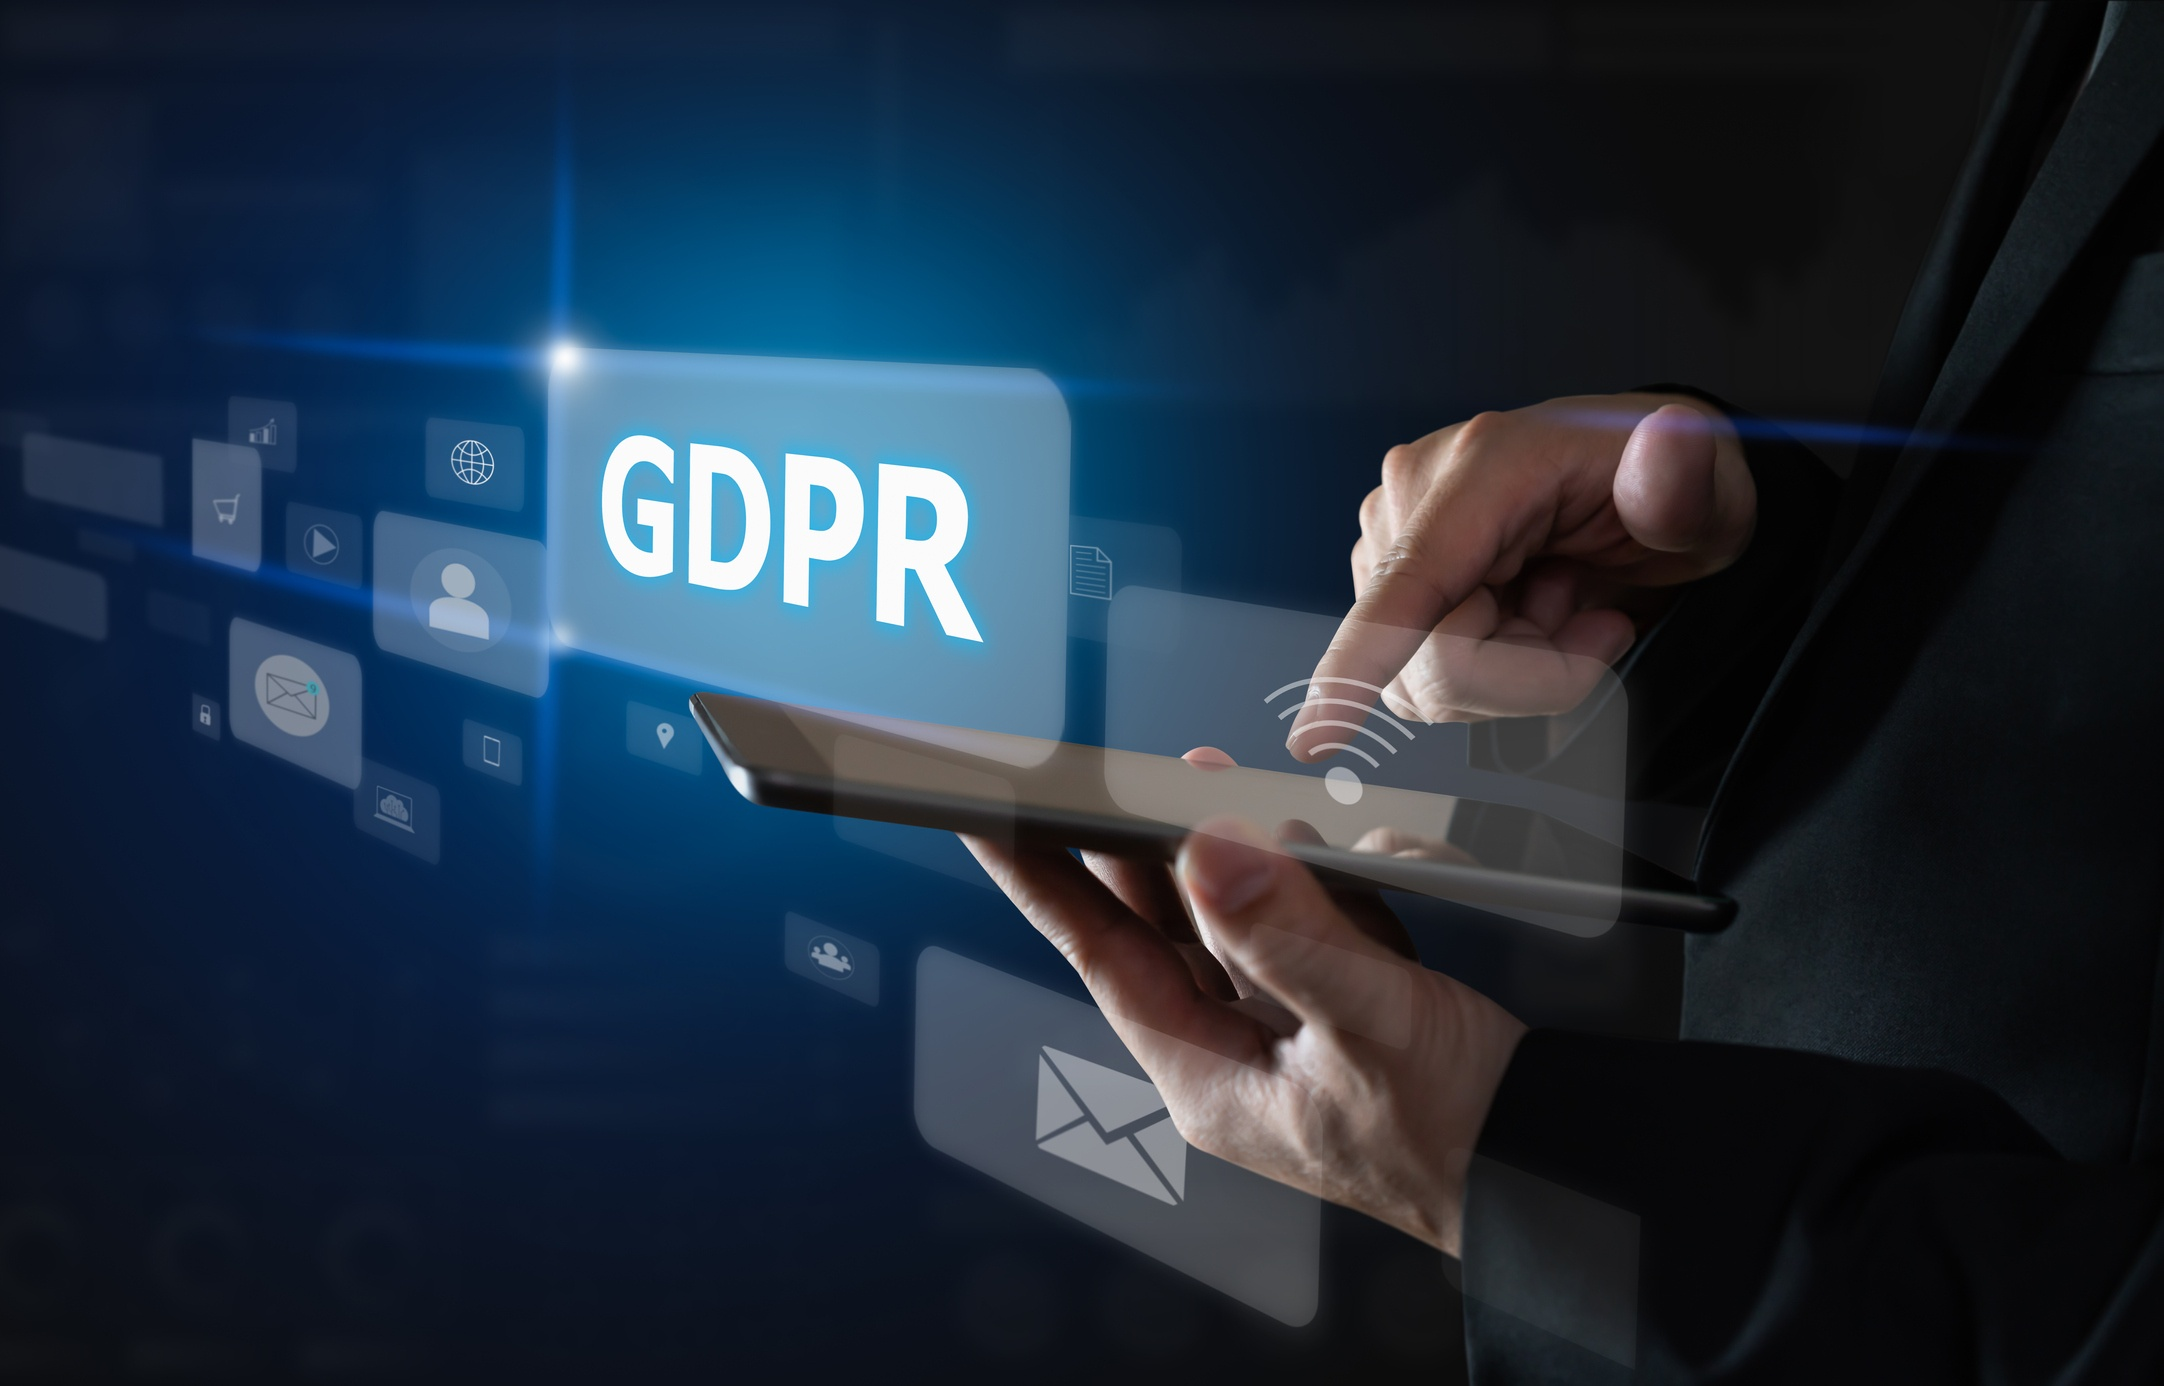 gdpr-and-email-roi-iStock-990347266